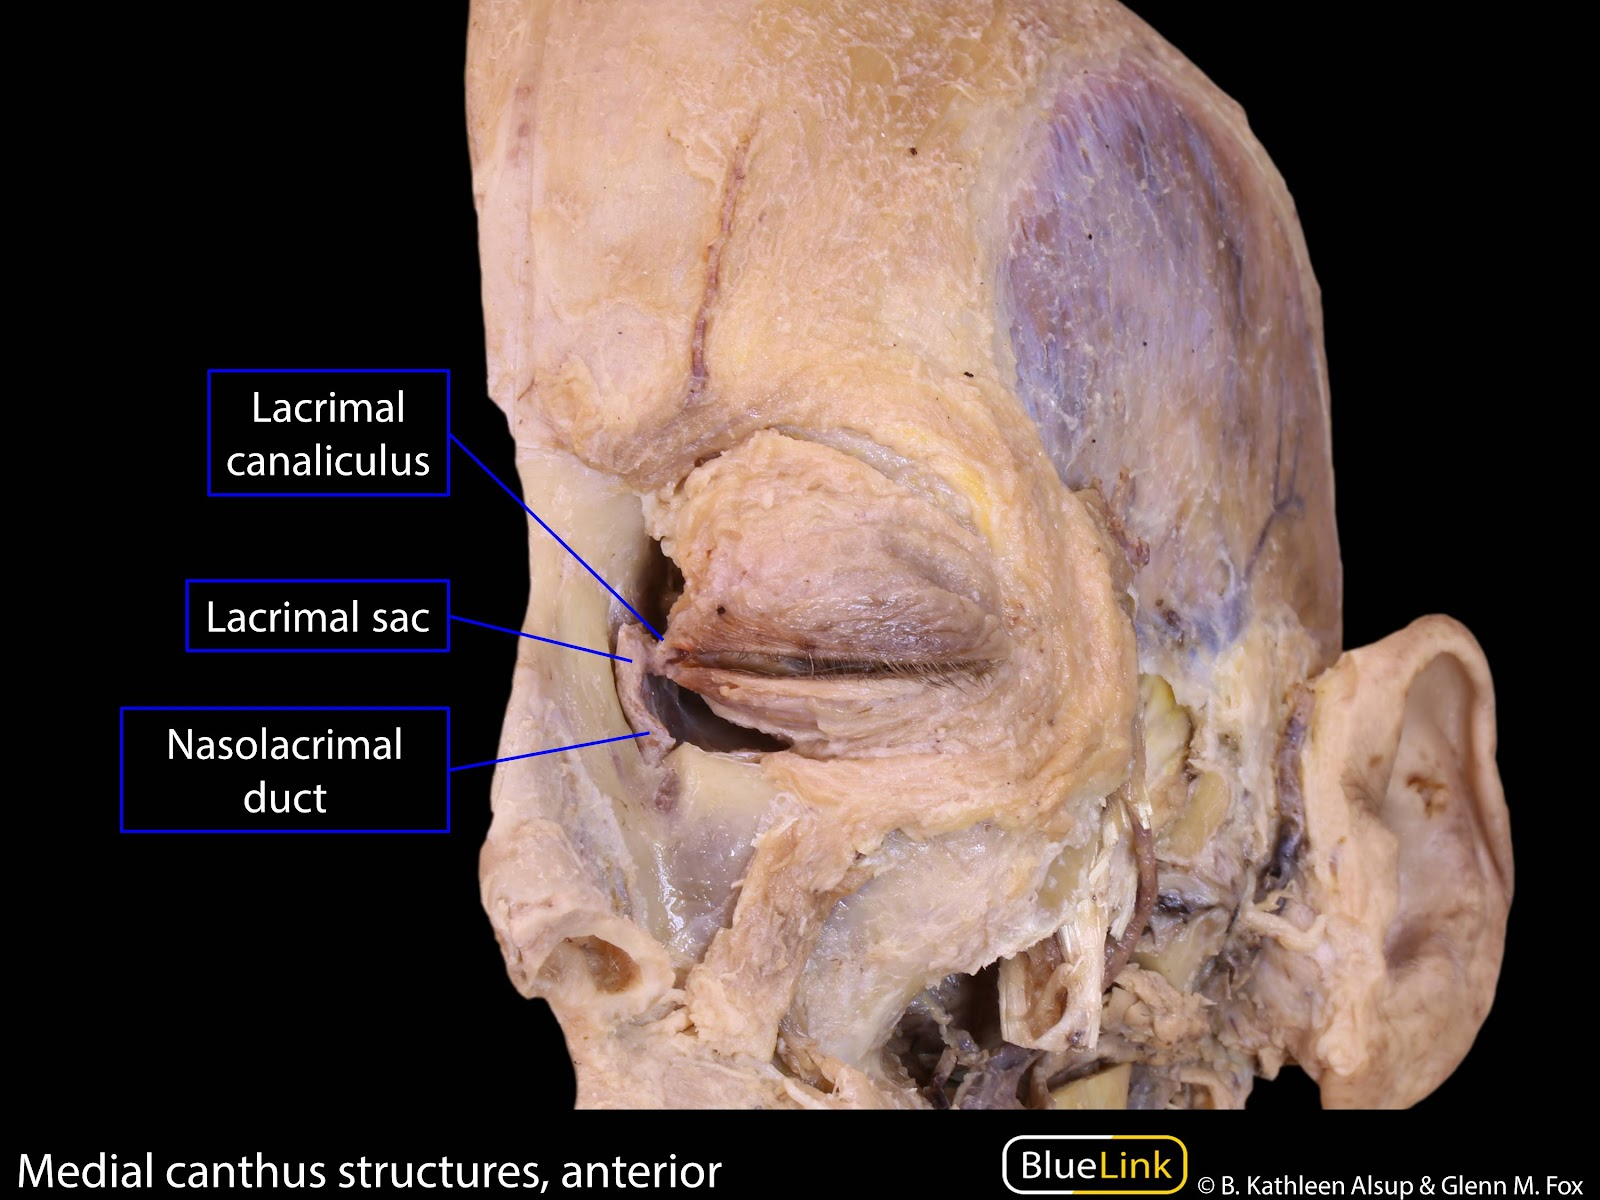 S10 Orbit and Cavernous Sinus - Learning Objectives - BlueLinkInferior Meatus Nasolacrimal Duct